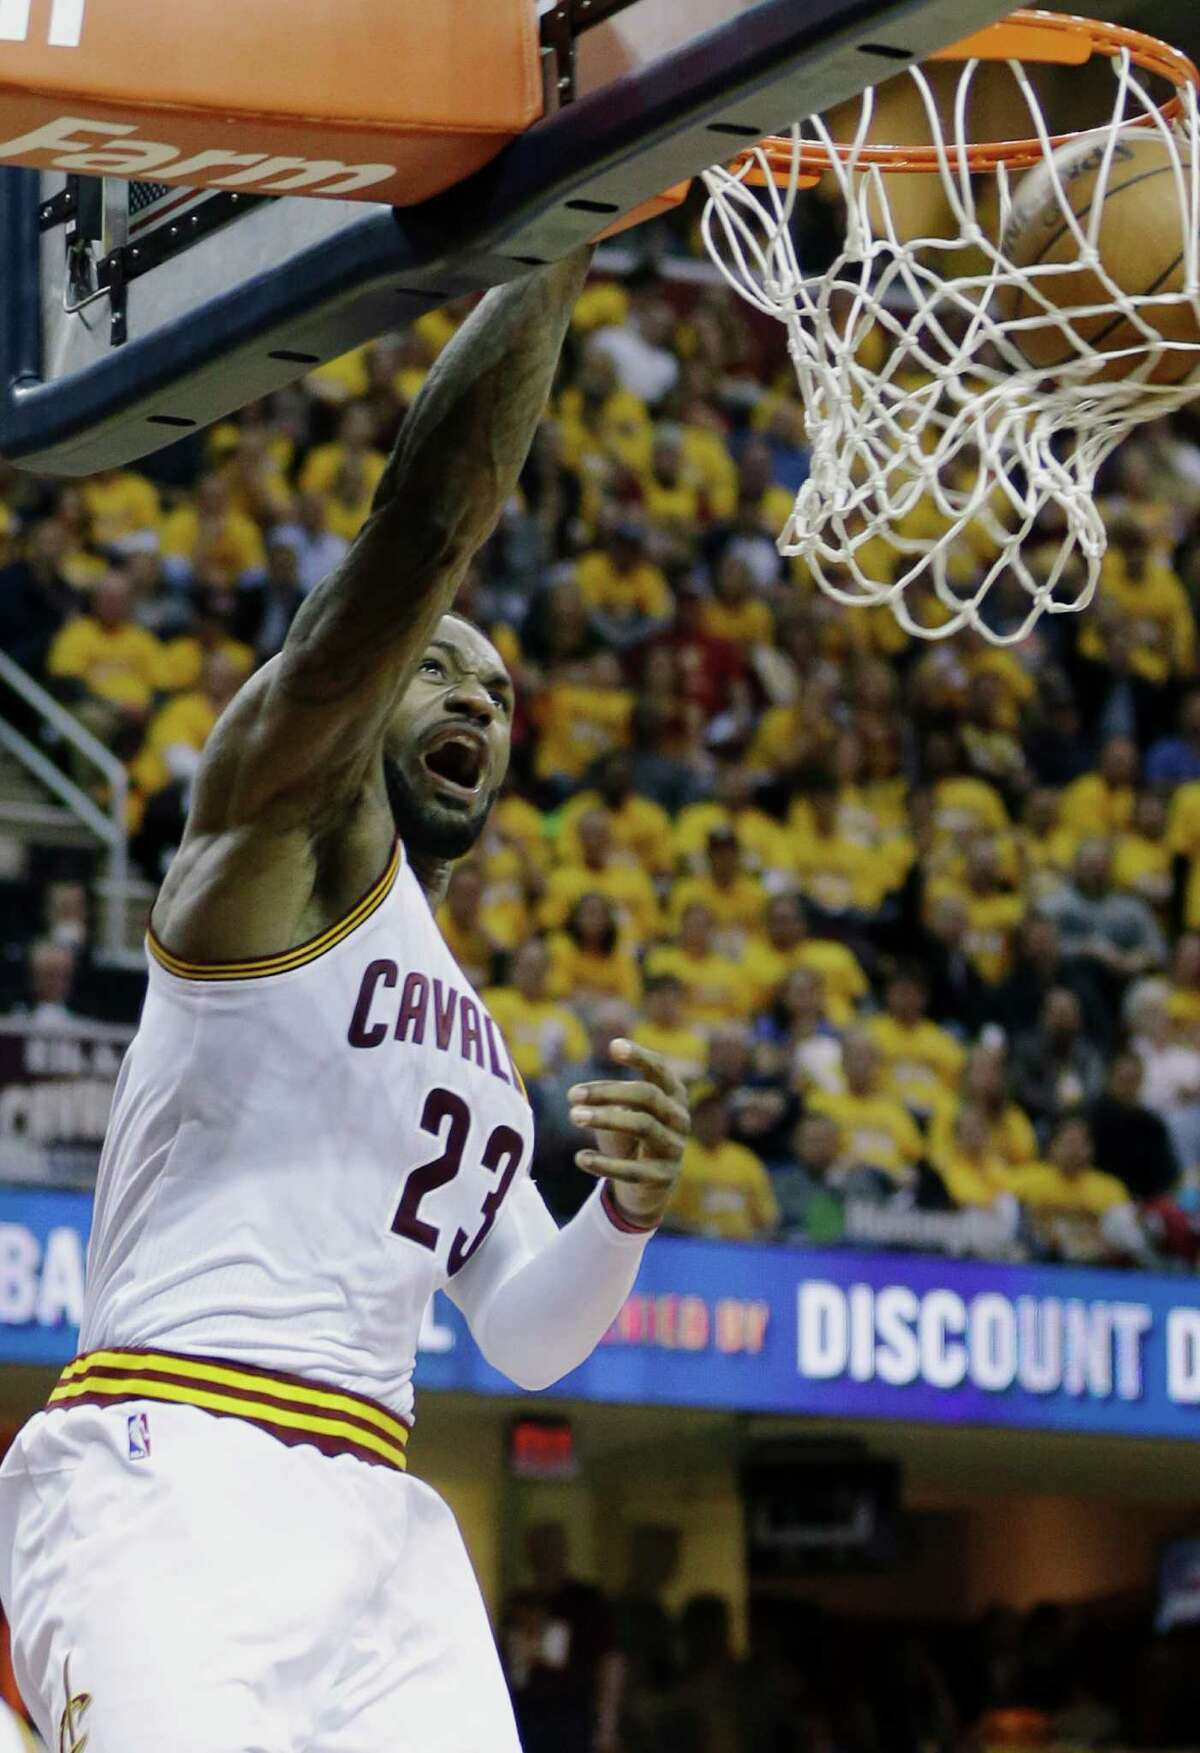 Cleveland Cavaliers' LeBron James (23) dunks against the Atlanta Hawks in the second half in Game 1 of a second-round NBA basketball playoff series, Monday, May 2, 2016, in Cleveland. (AP Photo/Tony Dejak) ORG XMIT: OHTD124